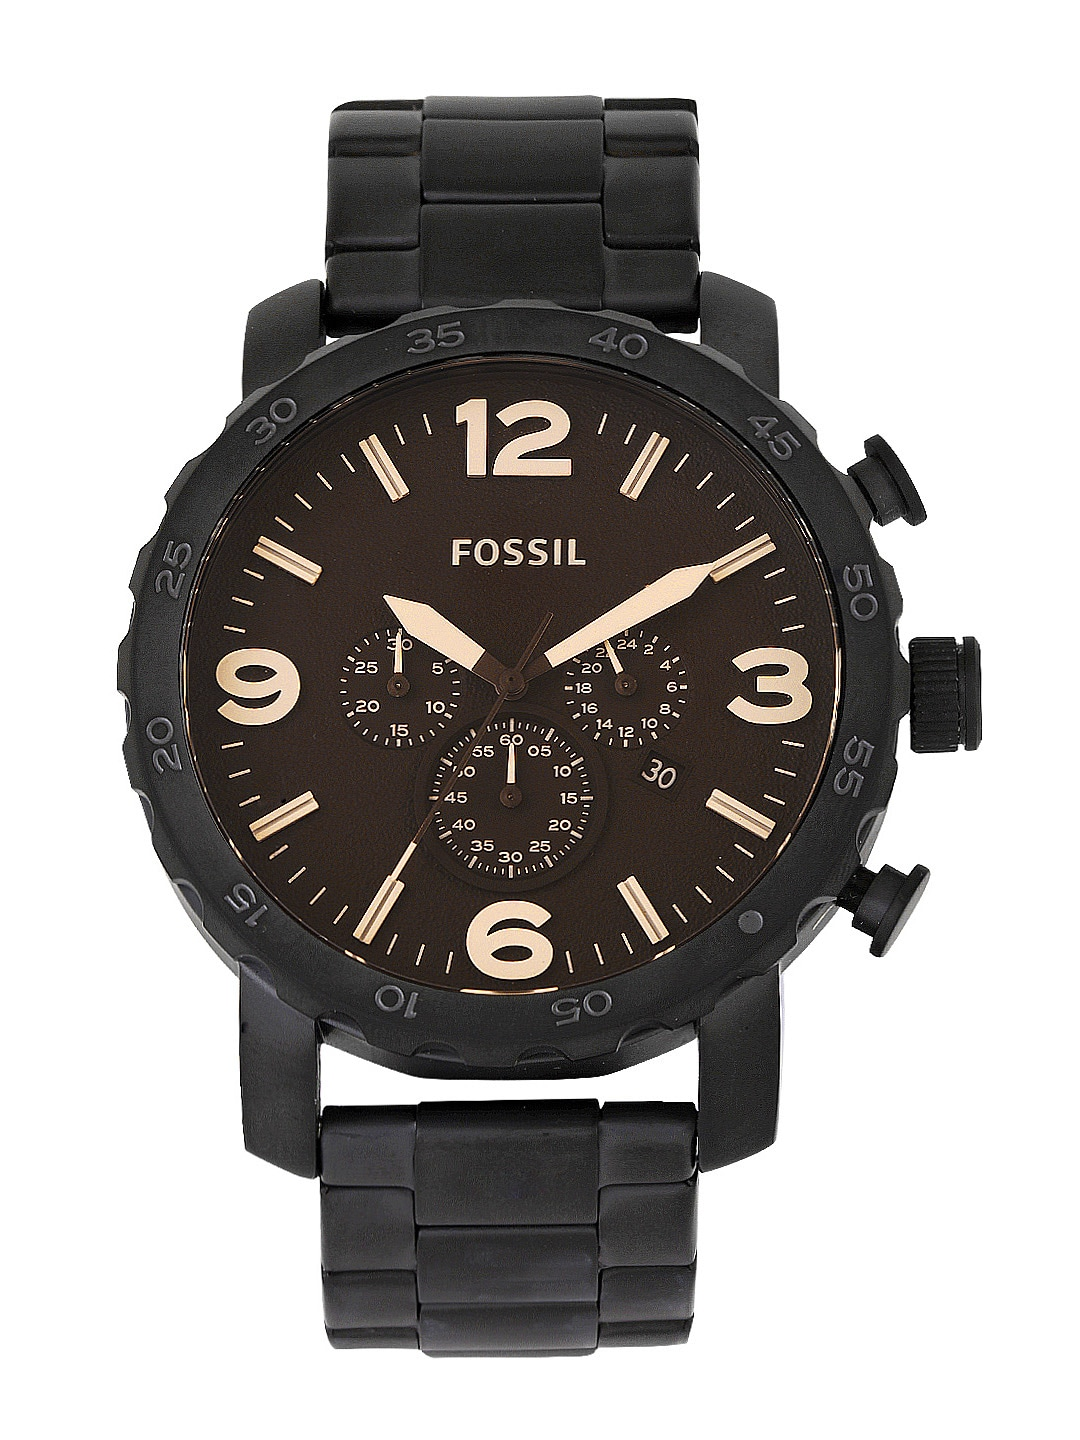 Fossil Men Brown Dial Chronograph Watch JR1356I